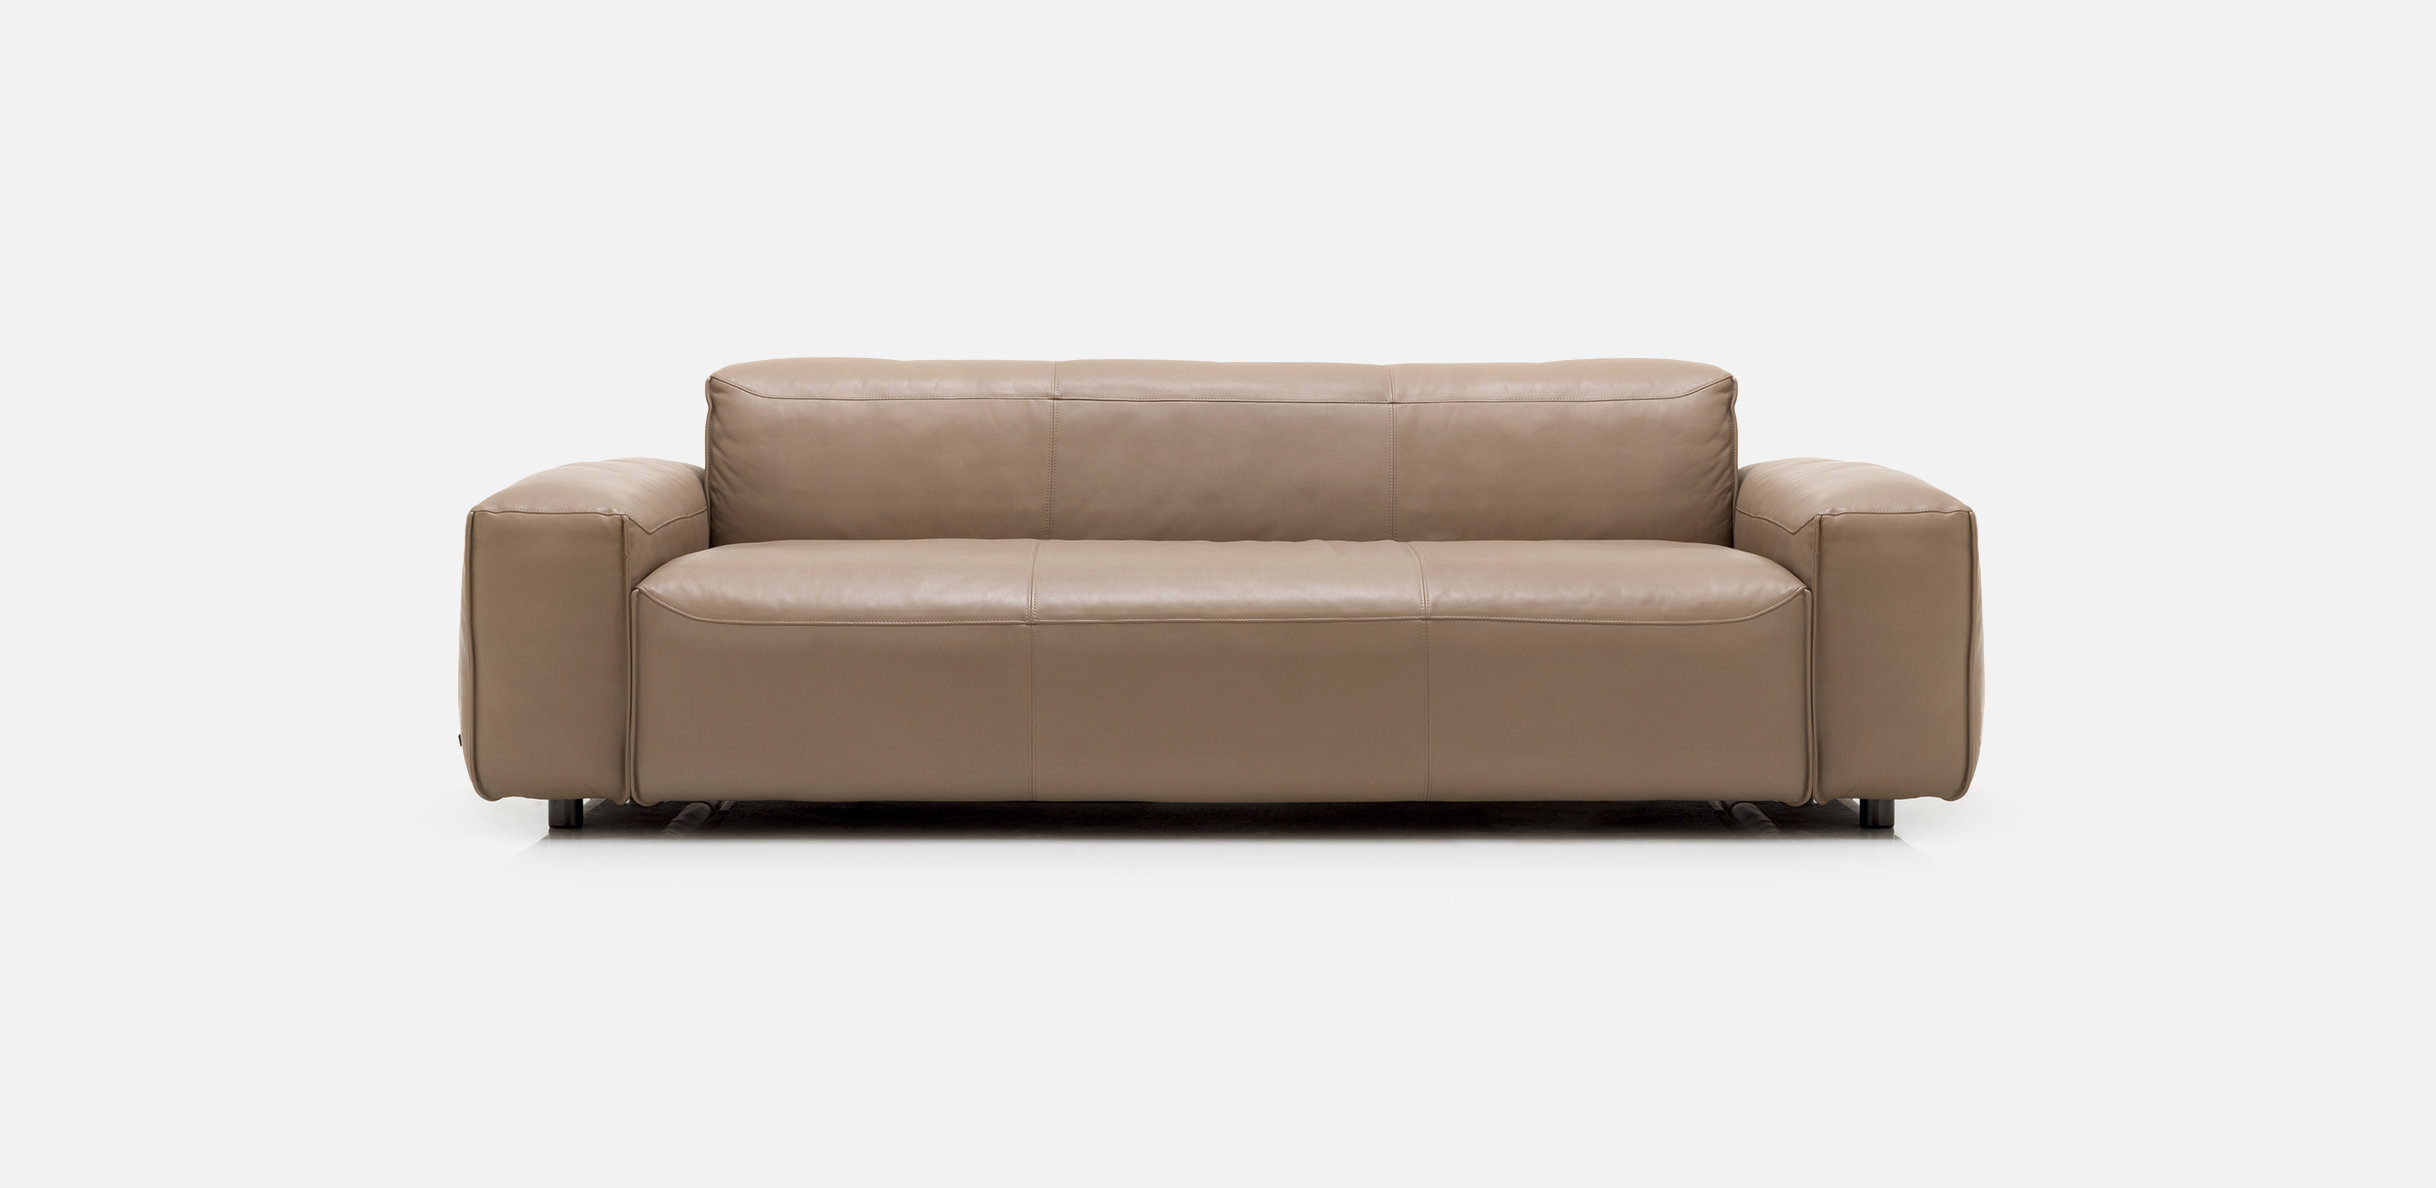 Bettsofa Rolf Benz Mio